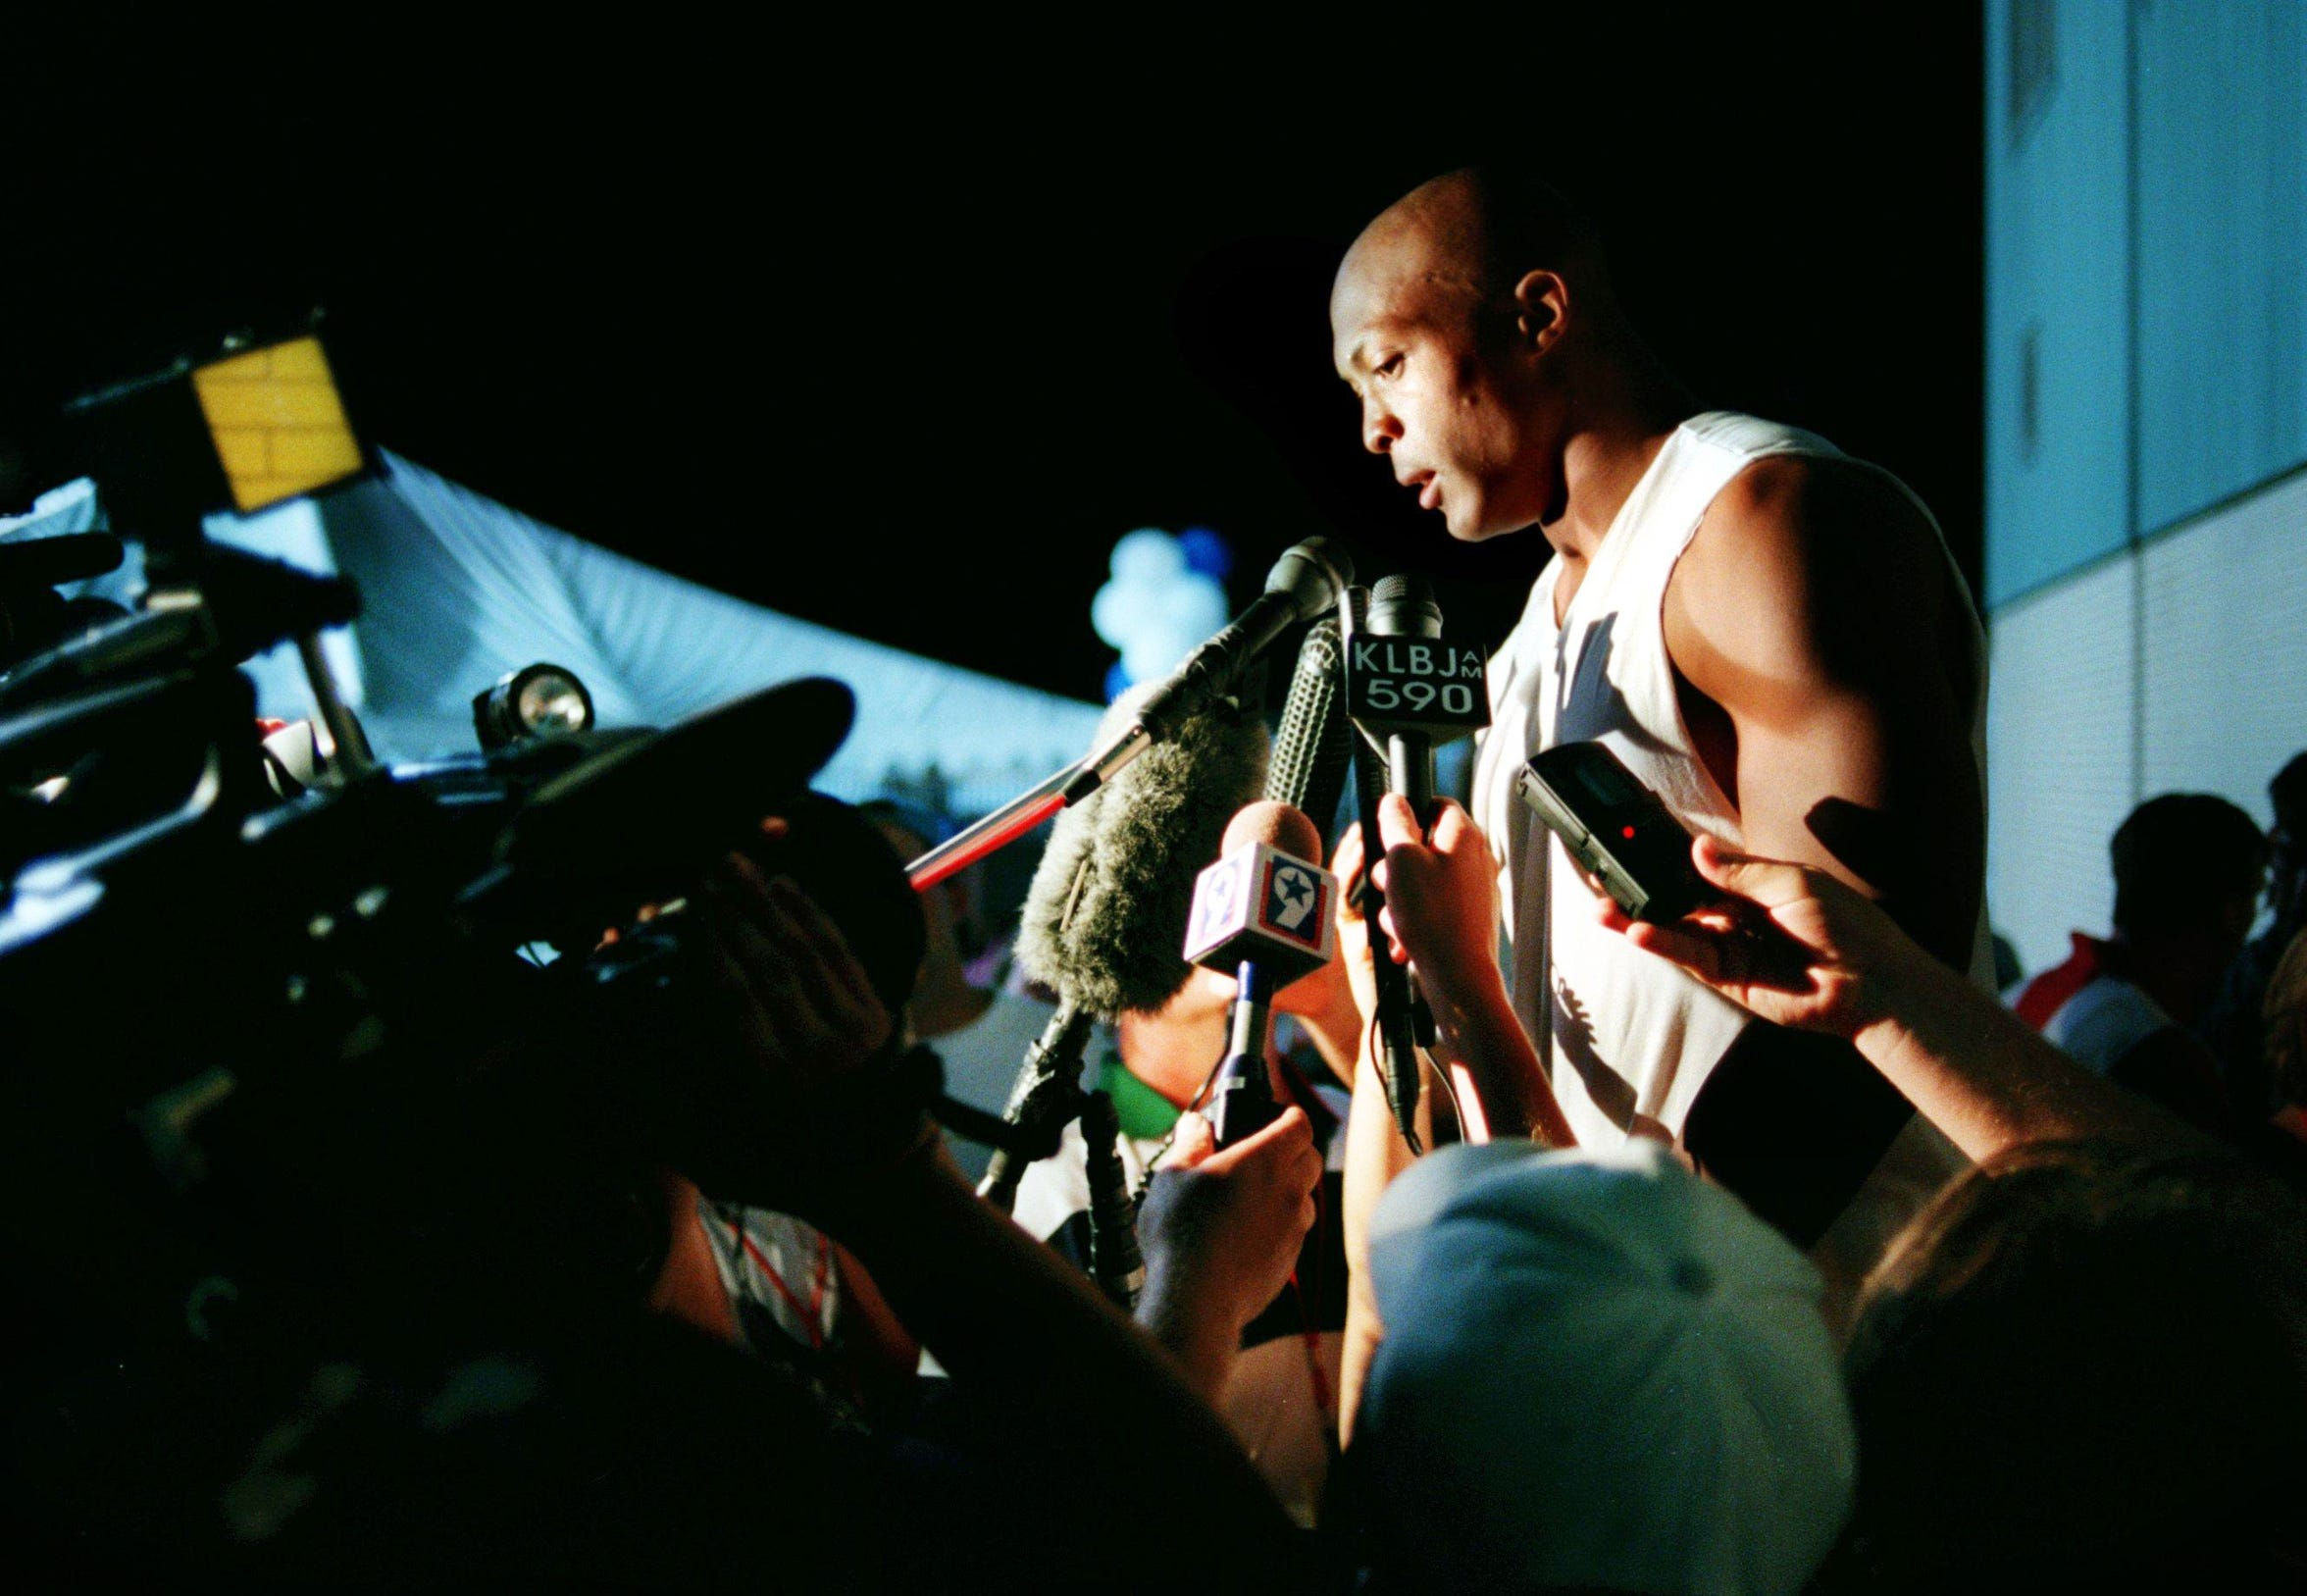 Houston Oilers rookie running back Eddie George talks with the media after a scrimmage with Dallas Cowboys in Austin, Texas during training camp July 24, 1996.